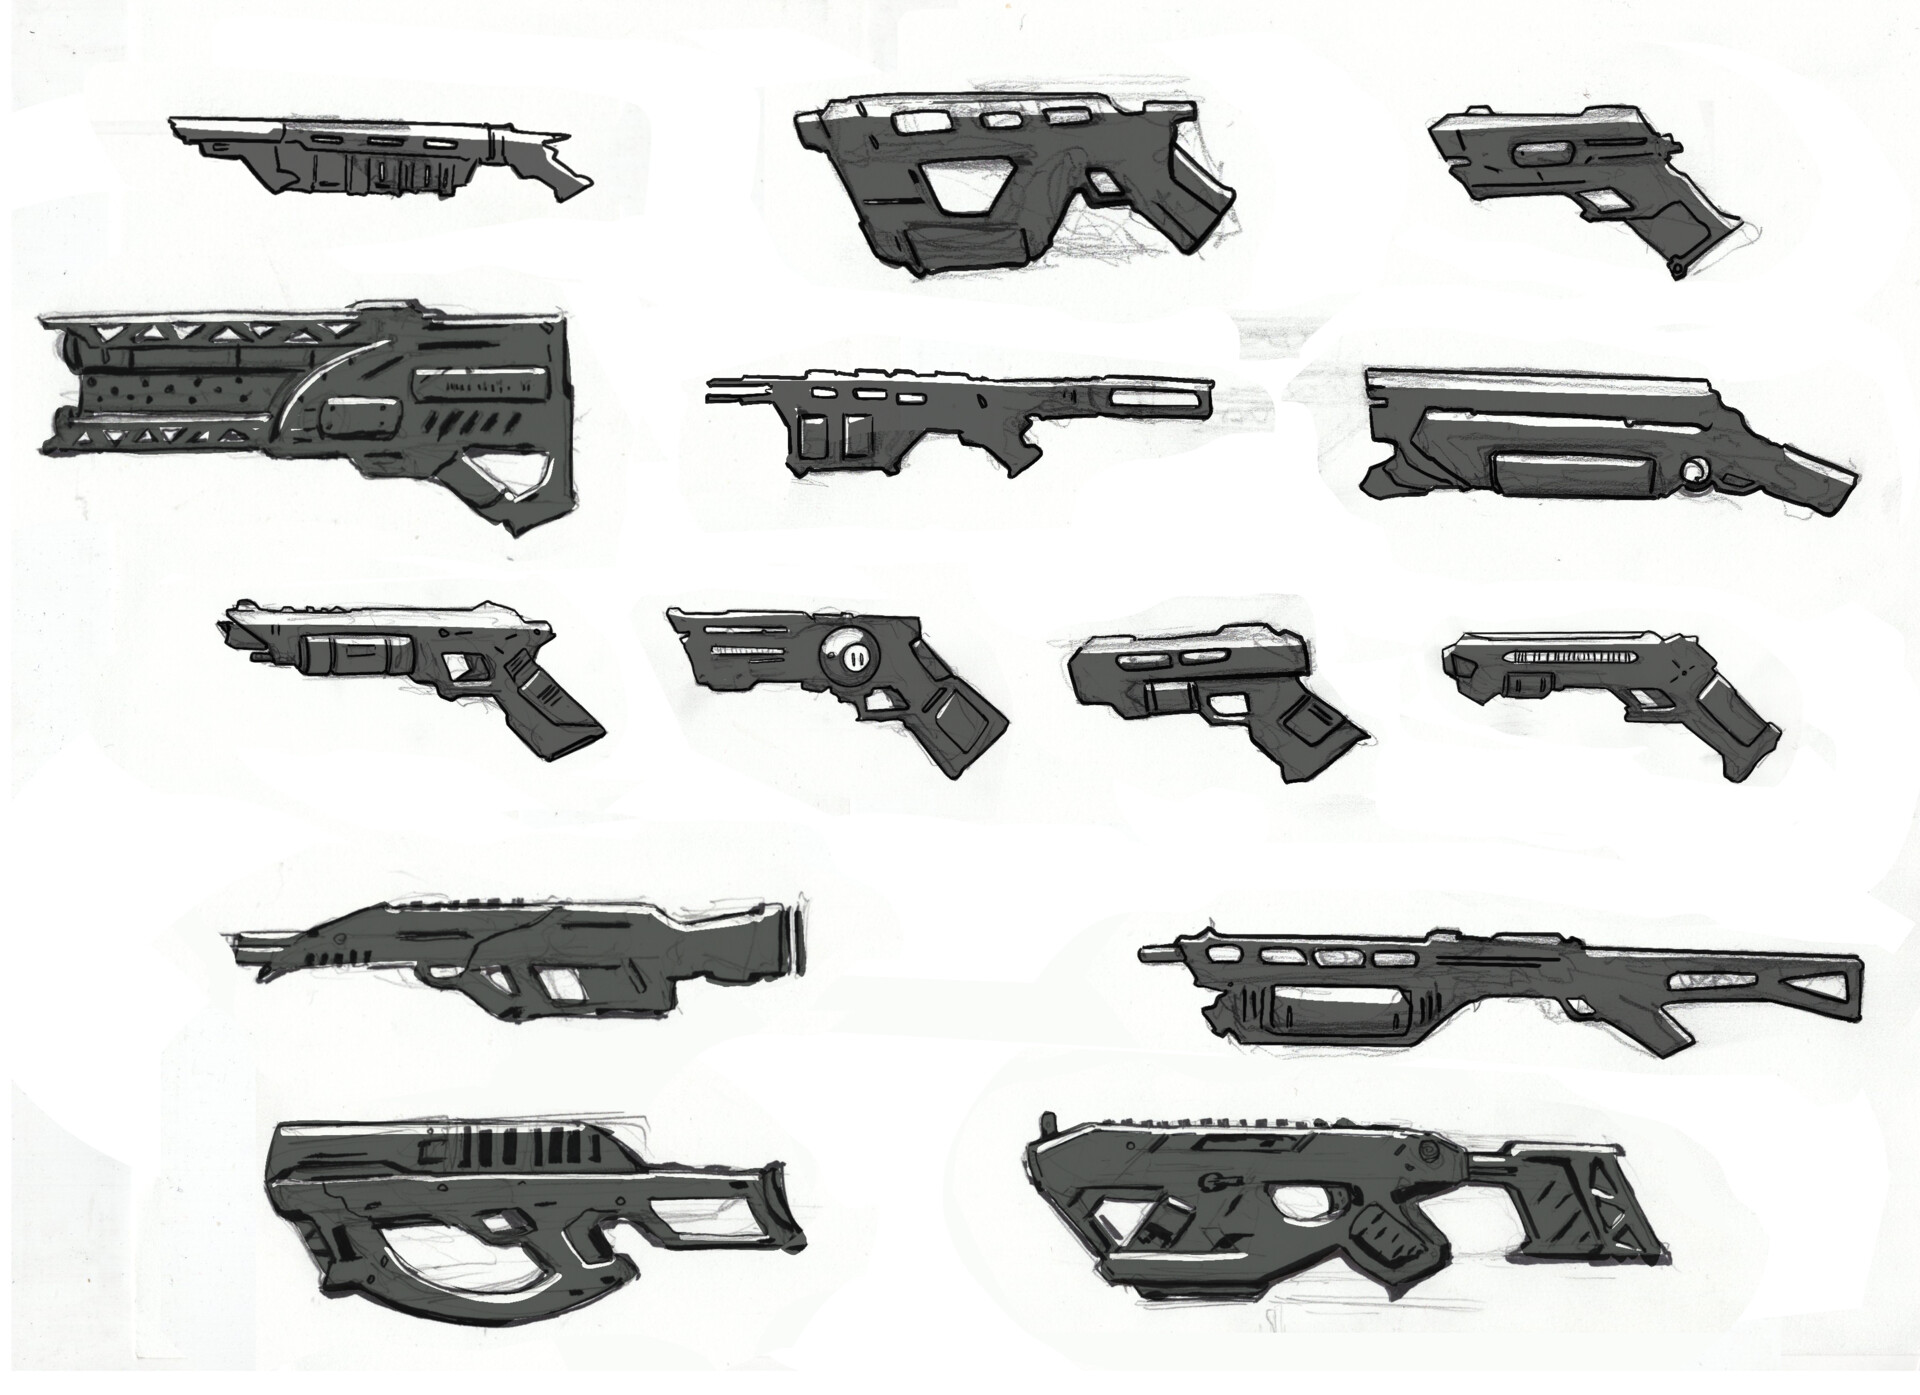 Creating weapon designs based on portable rail gun technology using batteries in place of cartridges. The idea of having exposed coils appealed to me and used that in the final designs. See props.